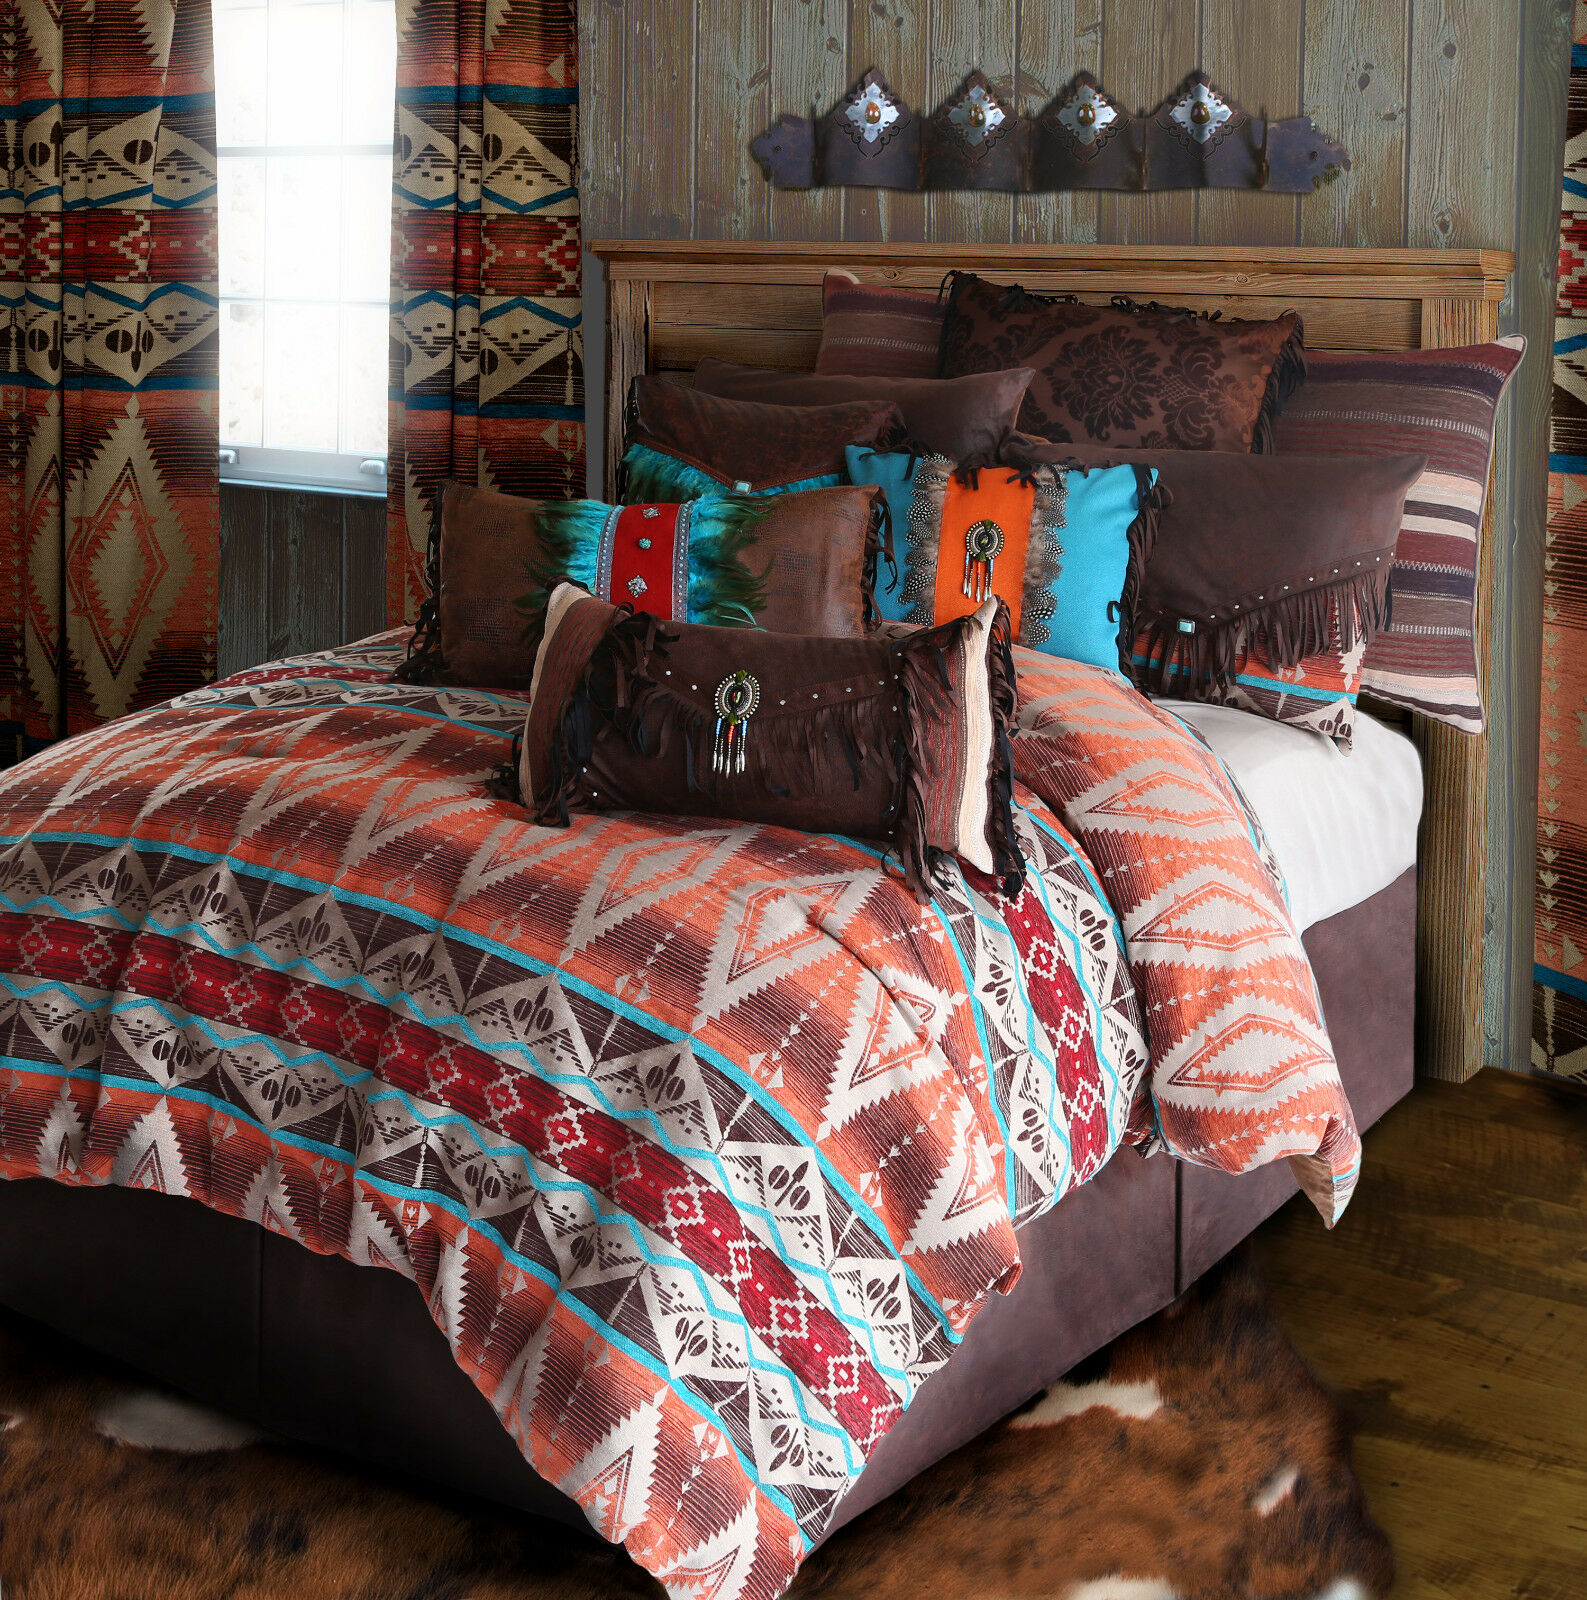 Mojave Sunset 5 Piece Comforter Bedding Set with  Drapes Option - FREE SHIPPING